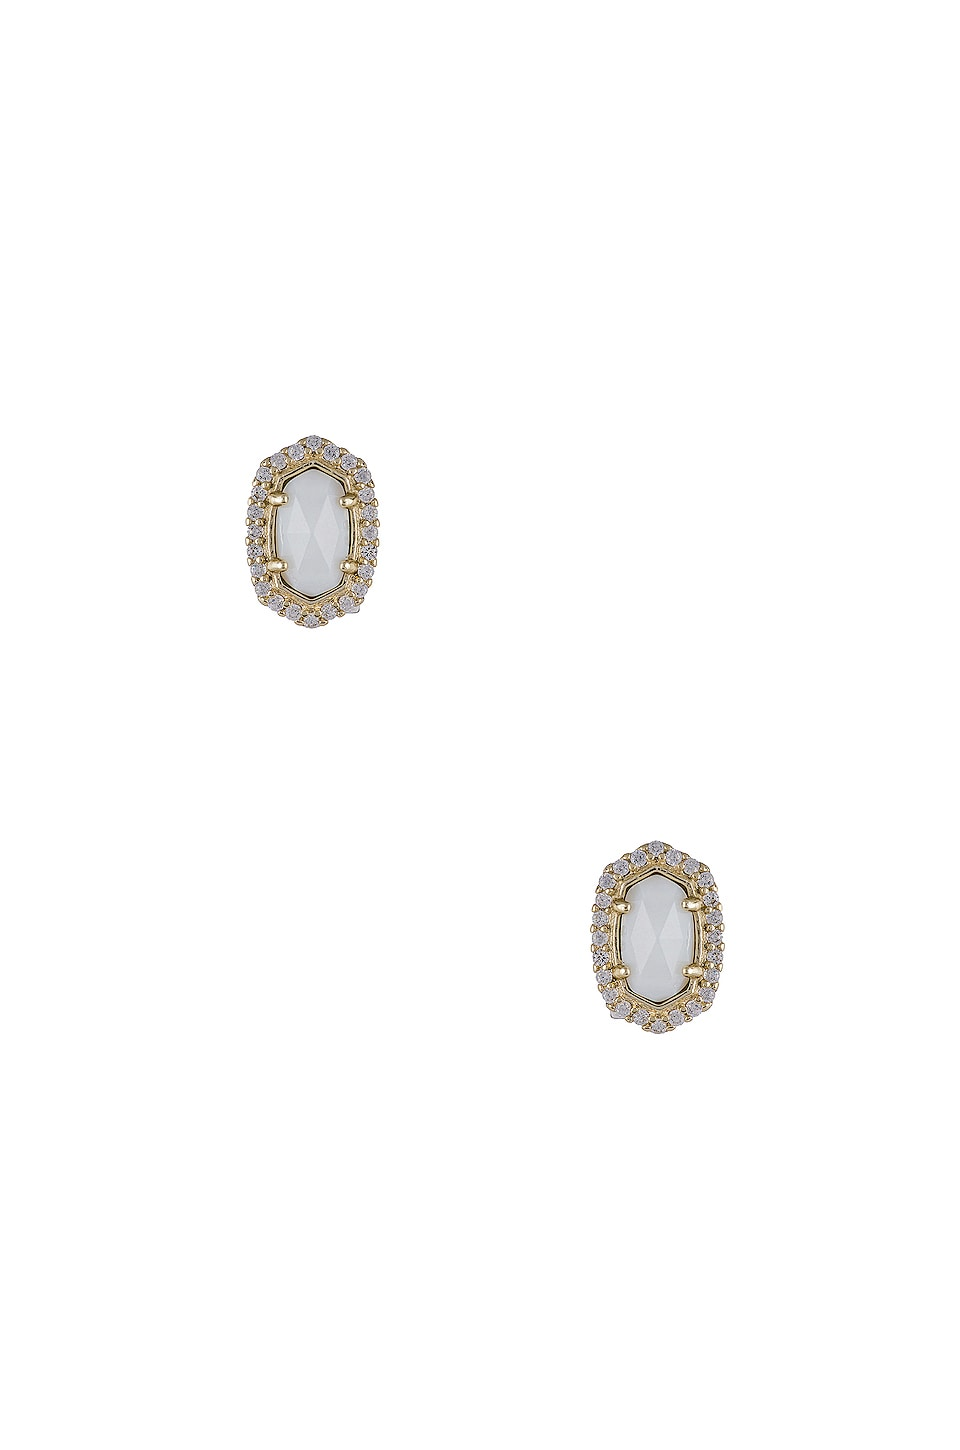 Kendra Scott Cade Earring in Gold & White Mother of Pearl